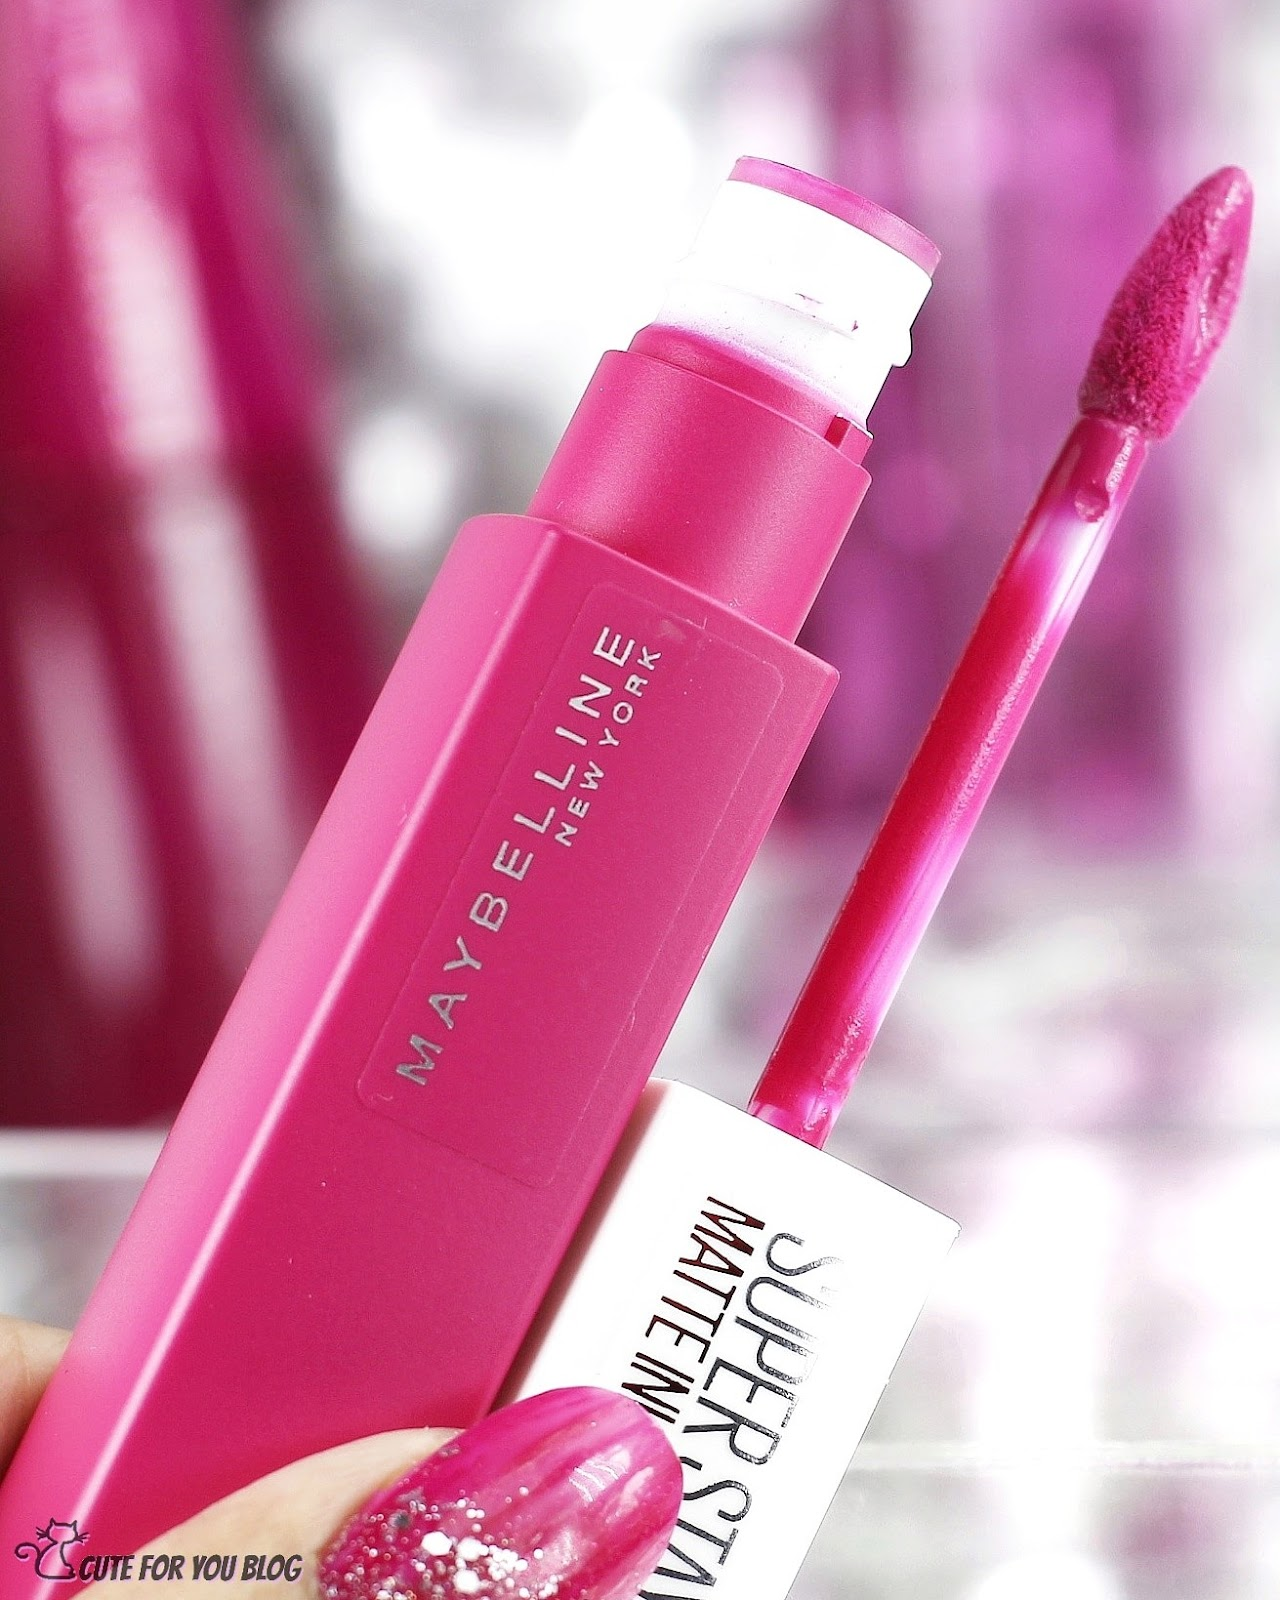 Super Stay Matte Ink, Super Stay Matte Ink Maybelline, Maybelline Argentina, maybelline argentina, maybelline reseña labiales, labiales maybelline, labiales matte, labiales Super Stay Matte Ink, lipstiicks, lipsticks matte, voyager maybelline, heroine maybelline, romantic maybelline, maquillaje blog, cute for you blog, cute for you blog karolina luke